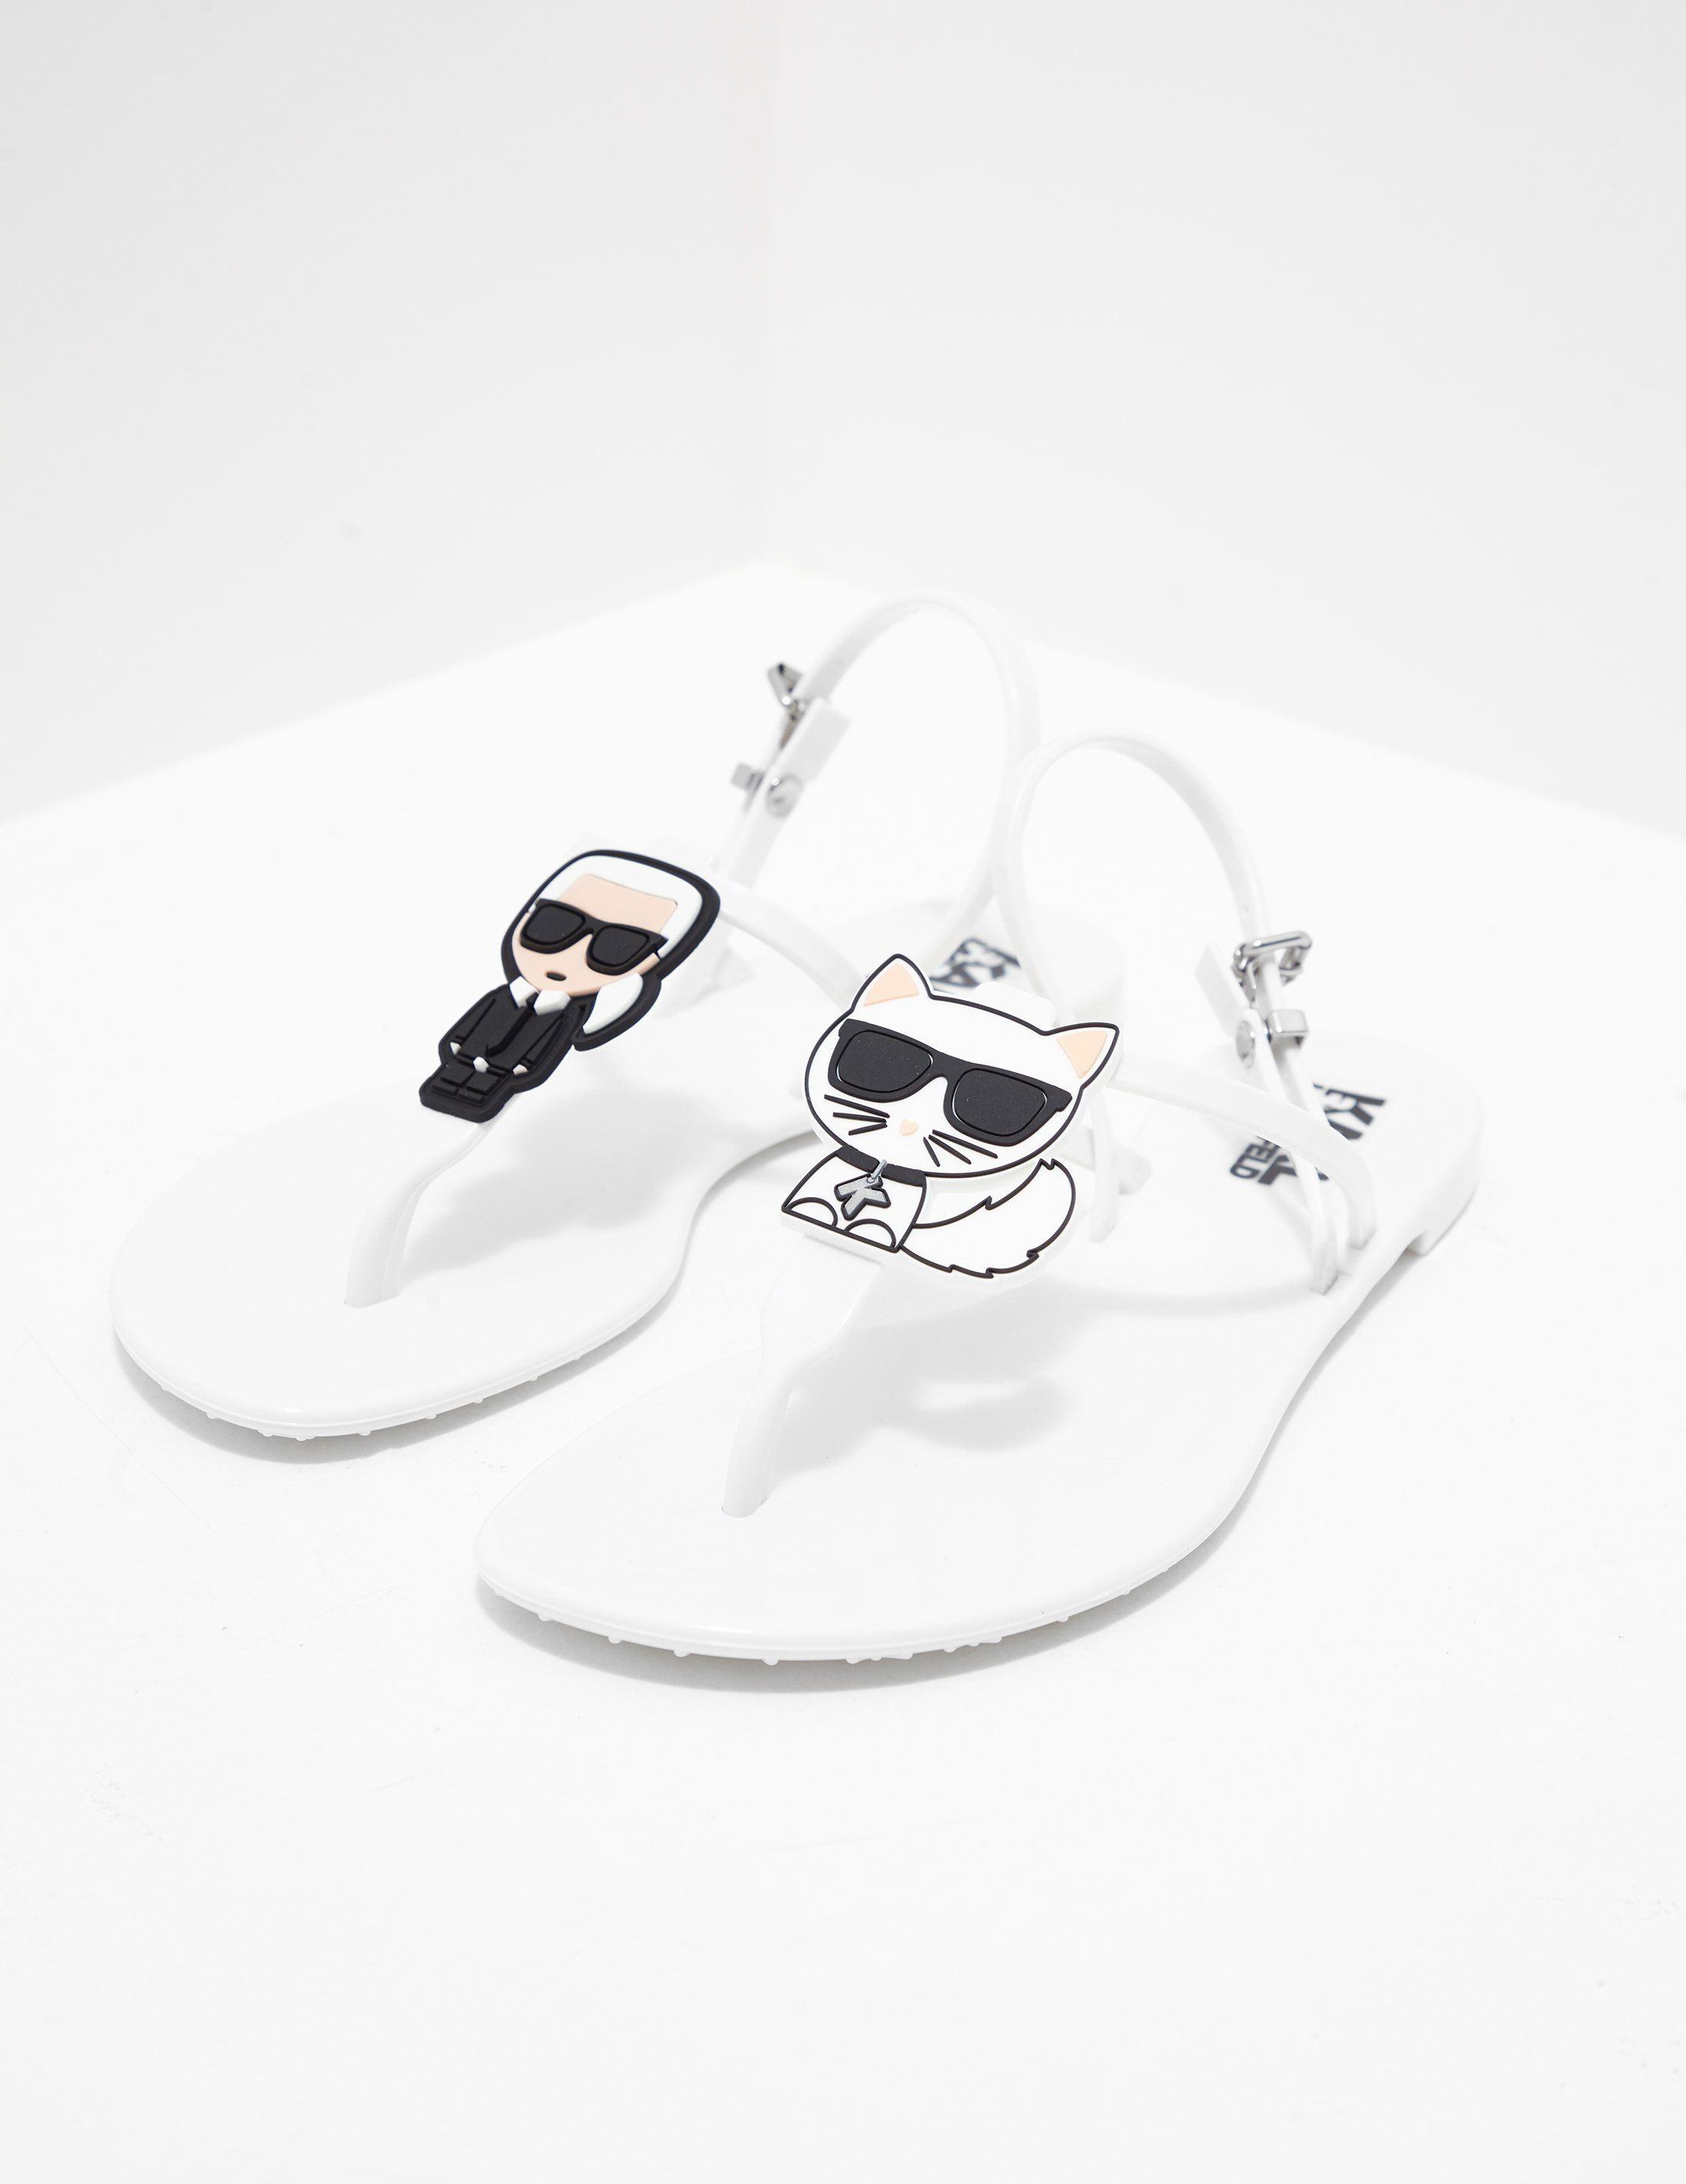 Karl Lagerfeld Jelly Sandals